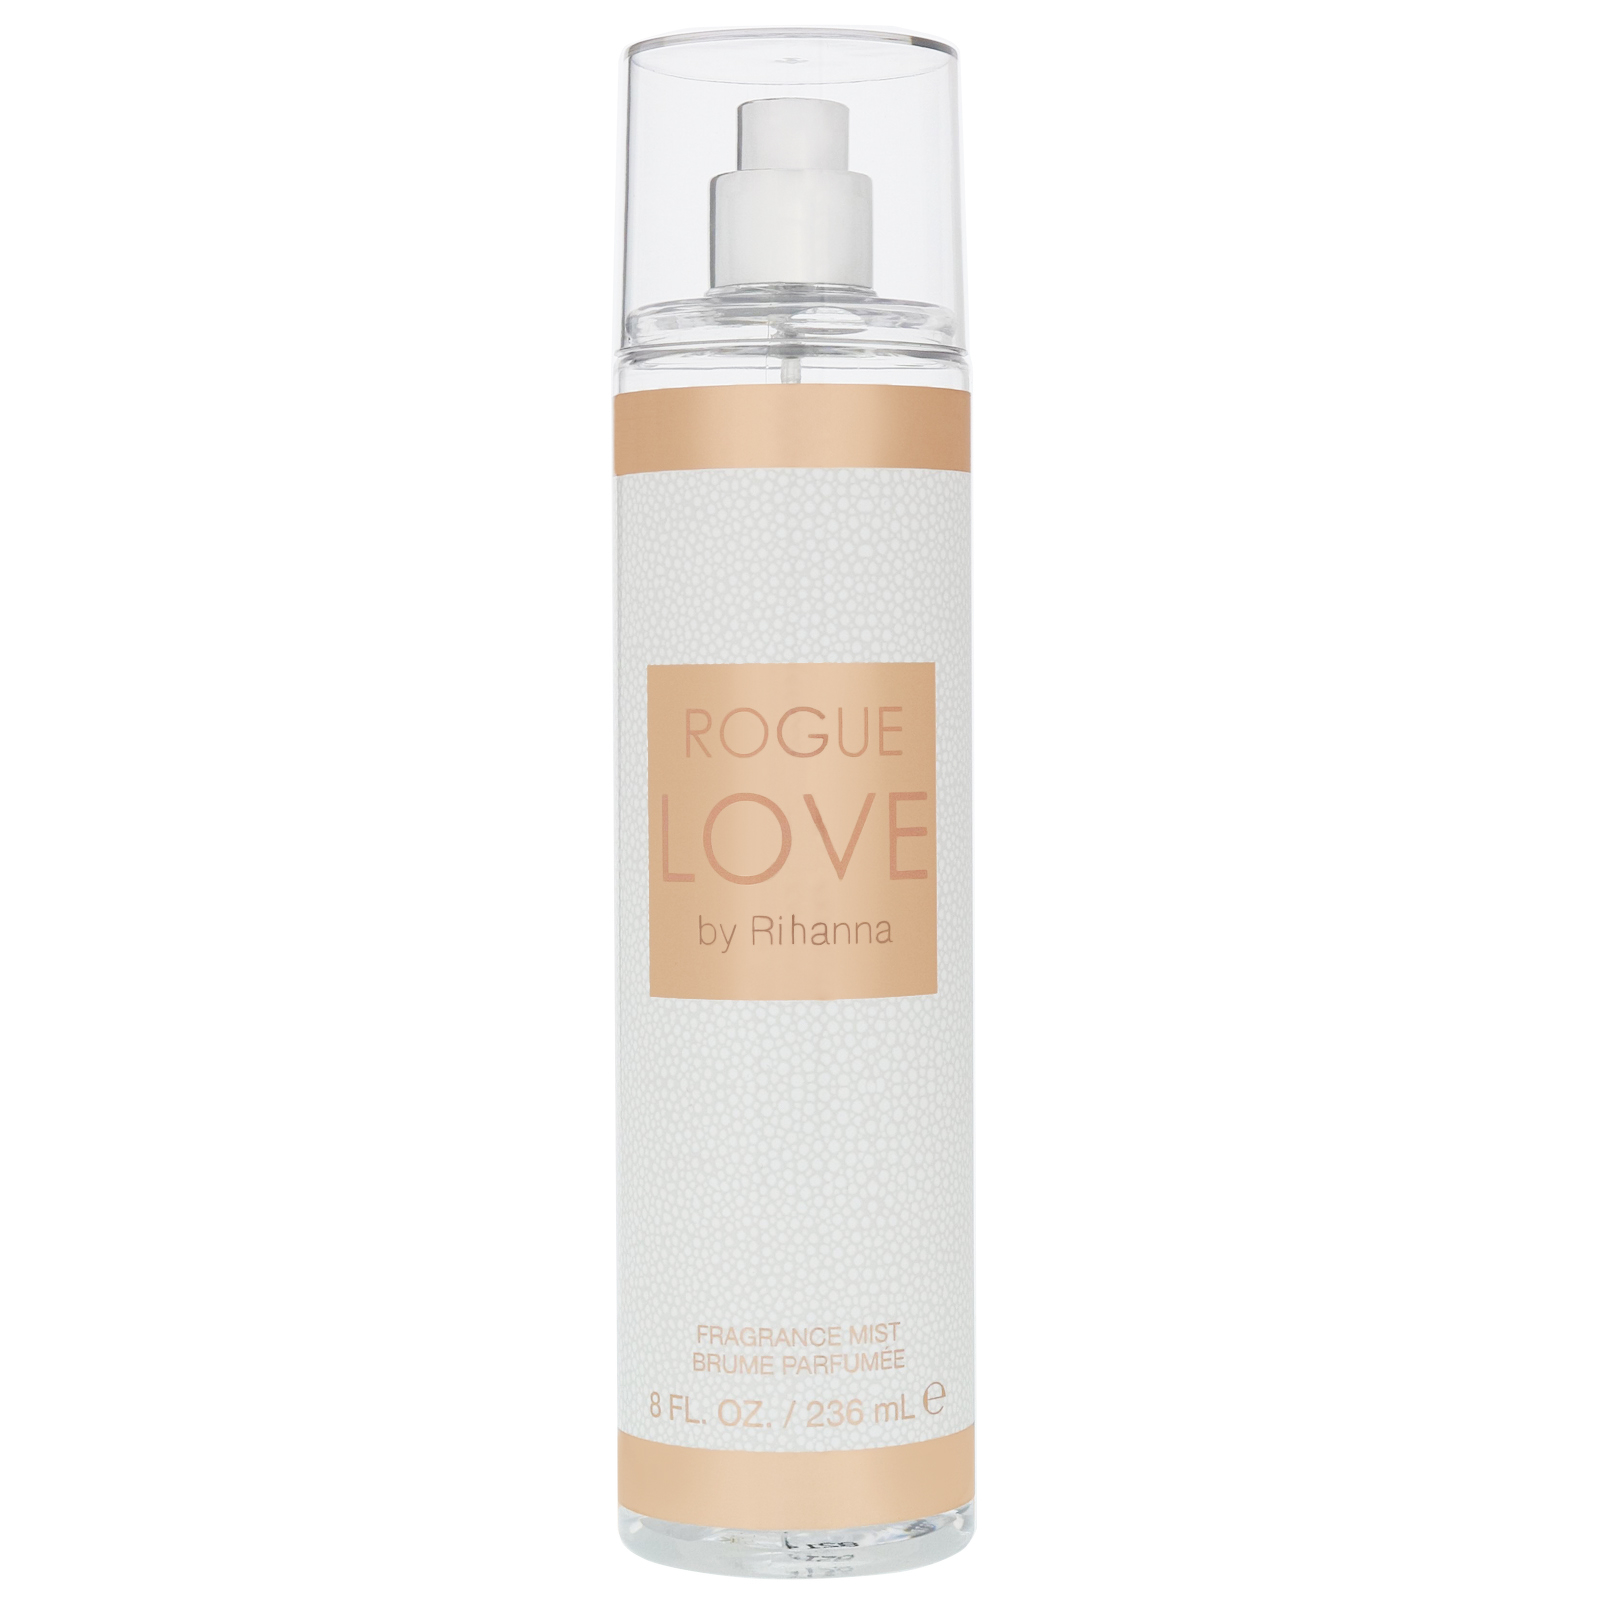 Rihanna Rogue Love Fragrance Mist 236ml